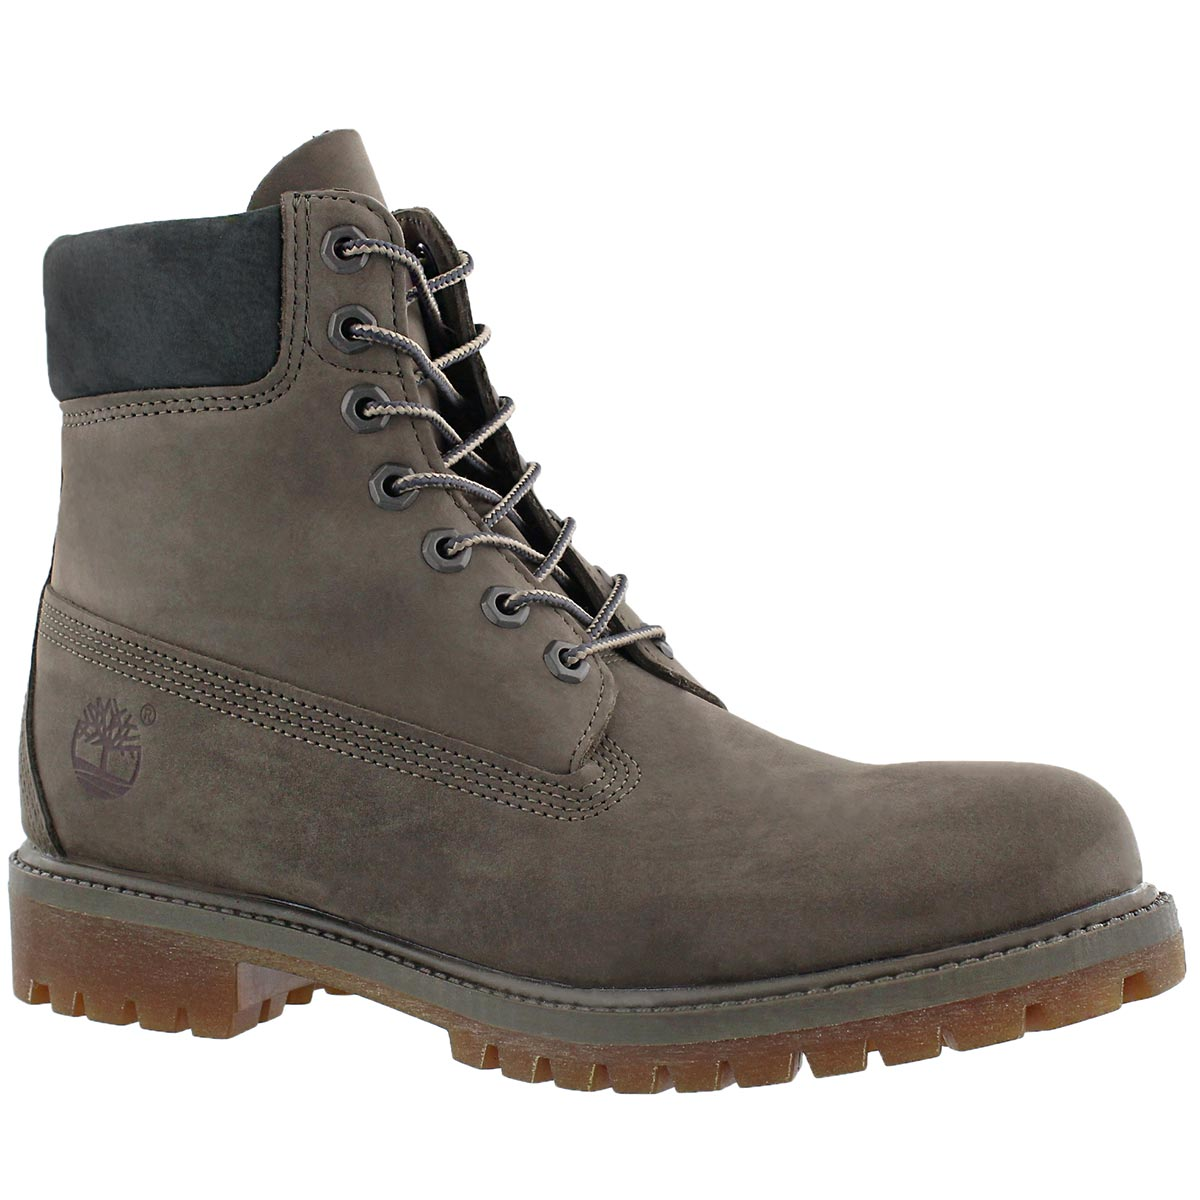 Mns Icon canteen waterproof boot